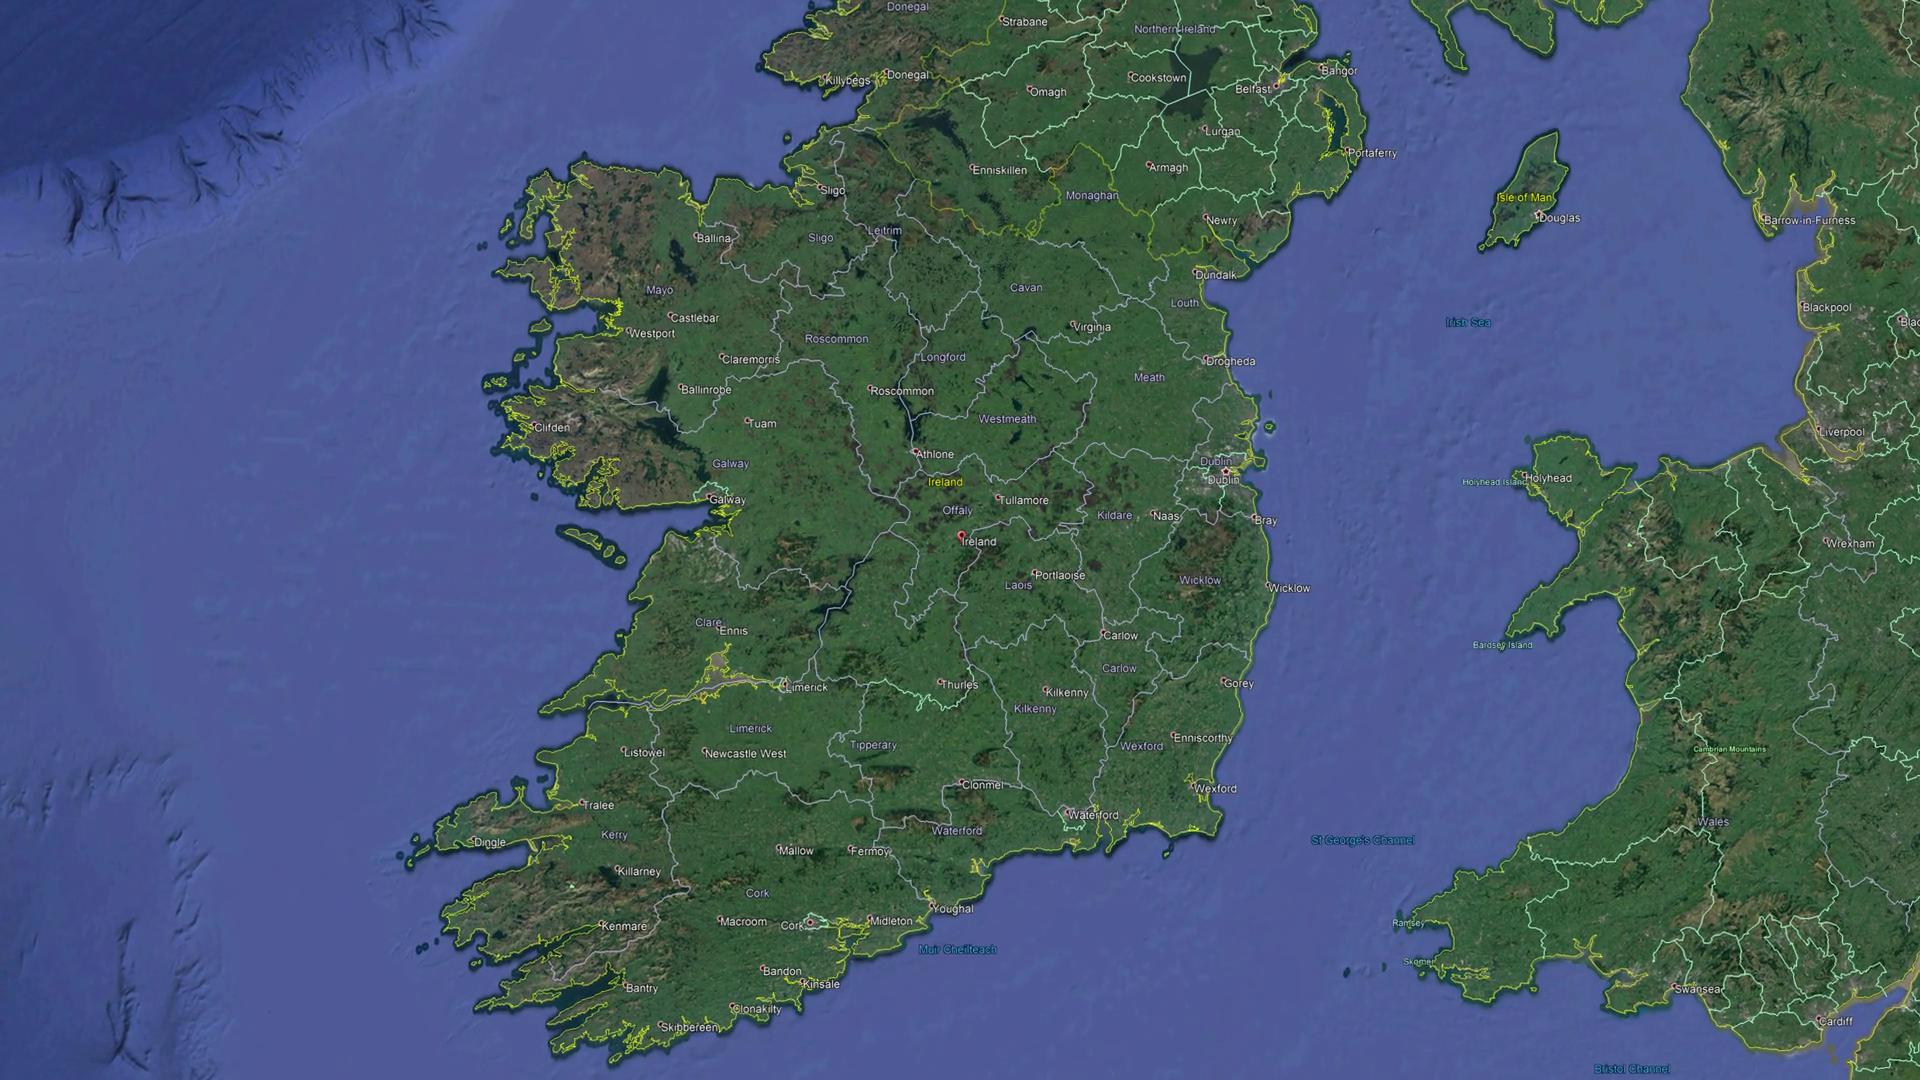 videoblocks-ireland-with-flag-3d-earth-in-space-zoom-in-on